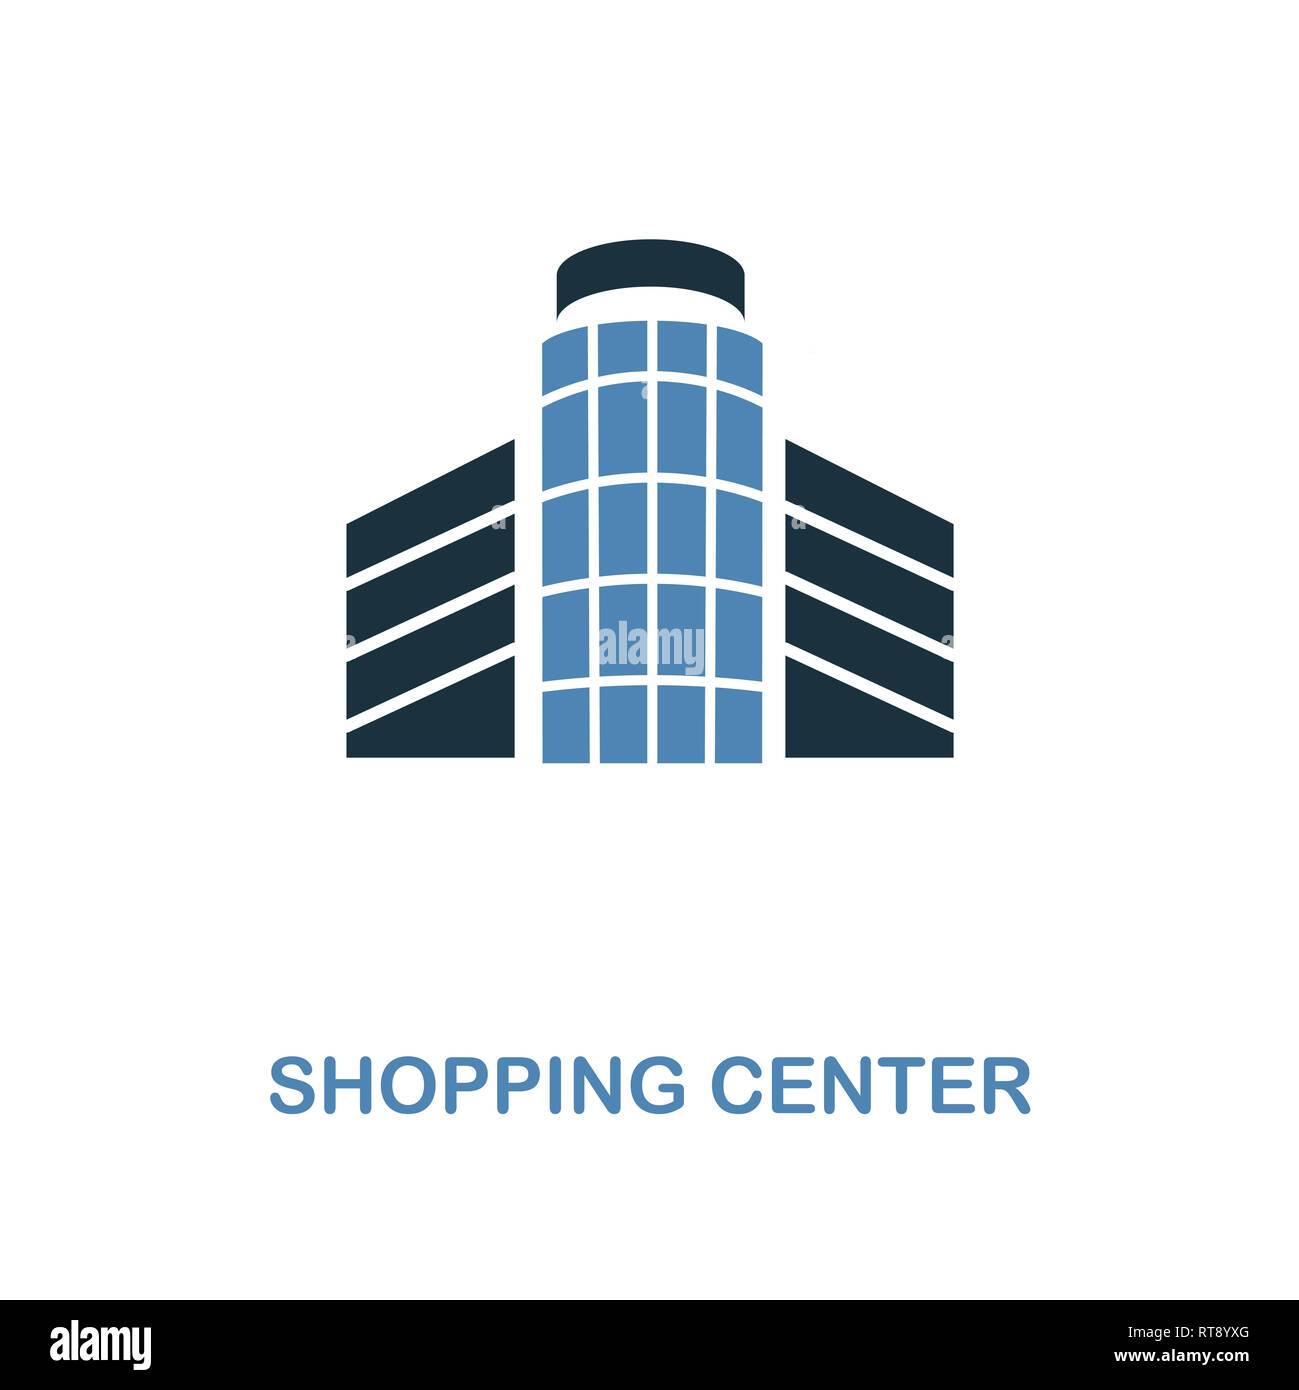 Shopping Center icon. Monochrome style design from shopping center sign collection. UI. Pixel perfect simple pictogram shopping center icon. Web desig - Stock Image